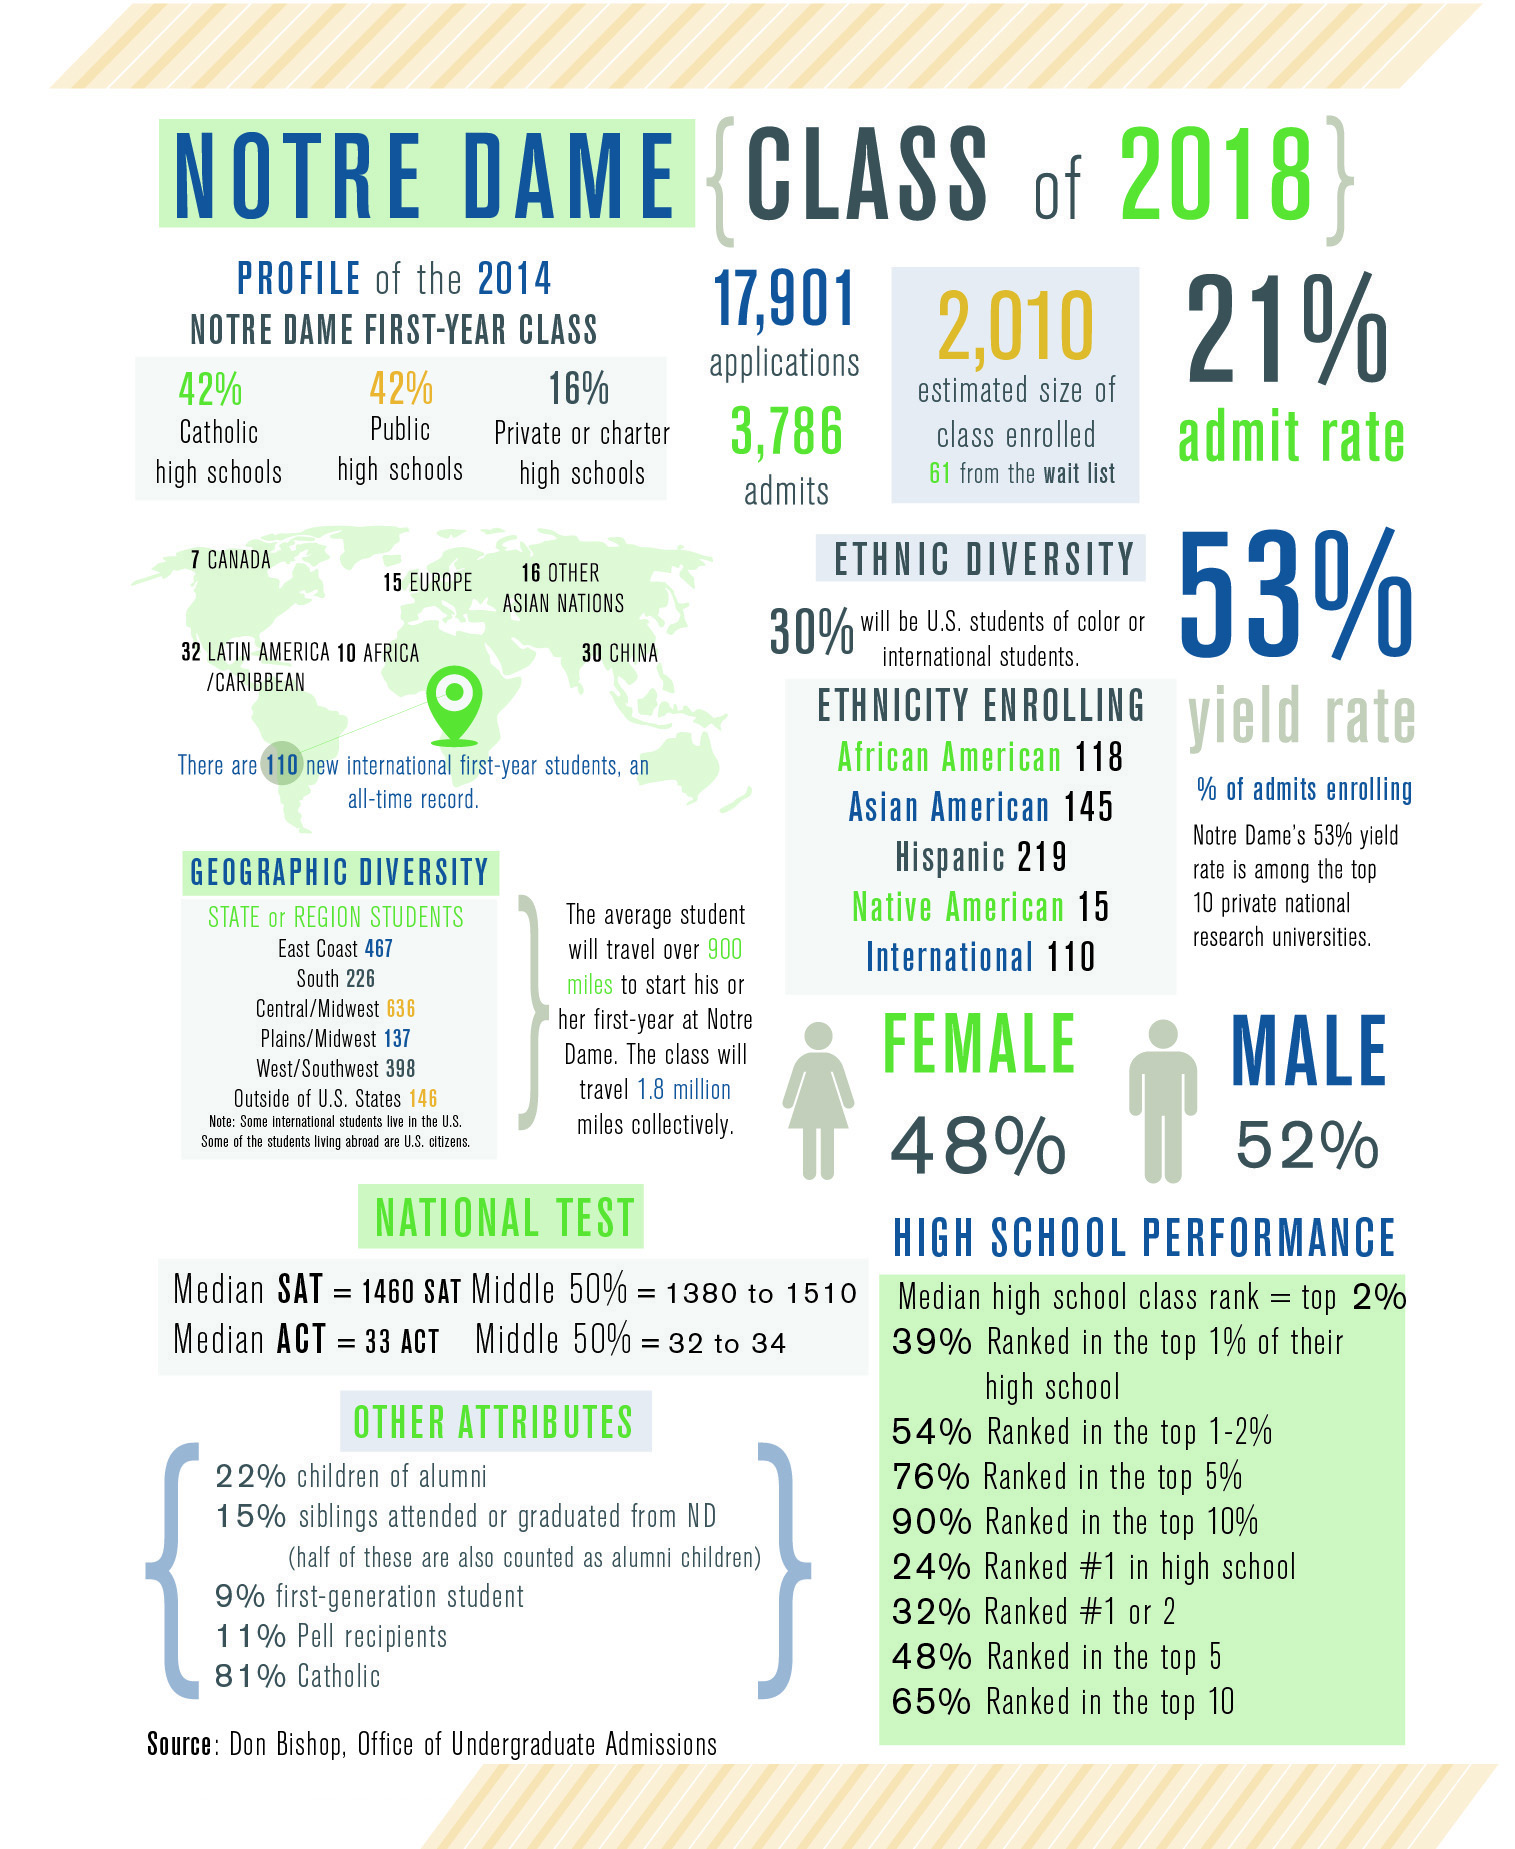 notre dame essay questions 2014 Notre dame / mendoza mba essay questions 2017-2018 2017-2018 mendoza mba essay questions essay essay option 2 the university of notre dame was founded.